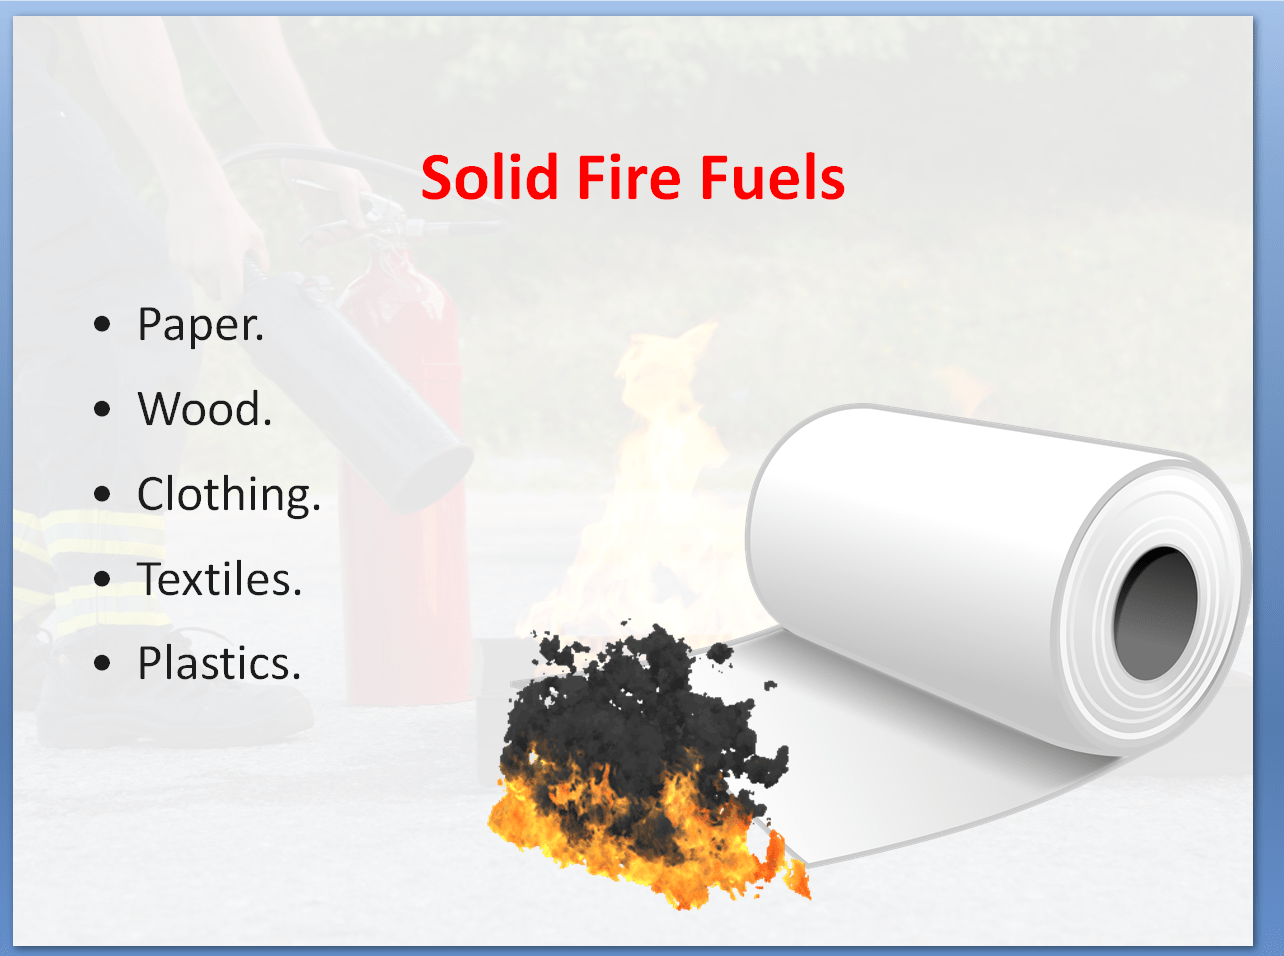 Fire Safety Awareness Training Course | Solid Fire Fuels